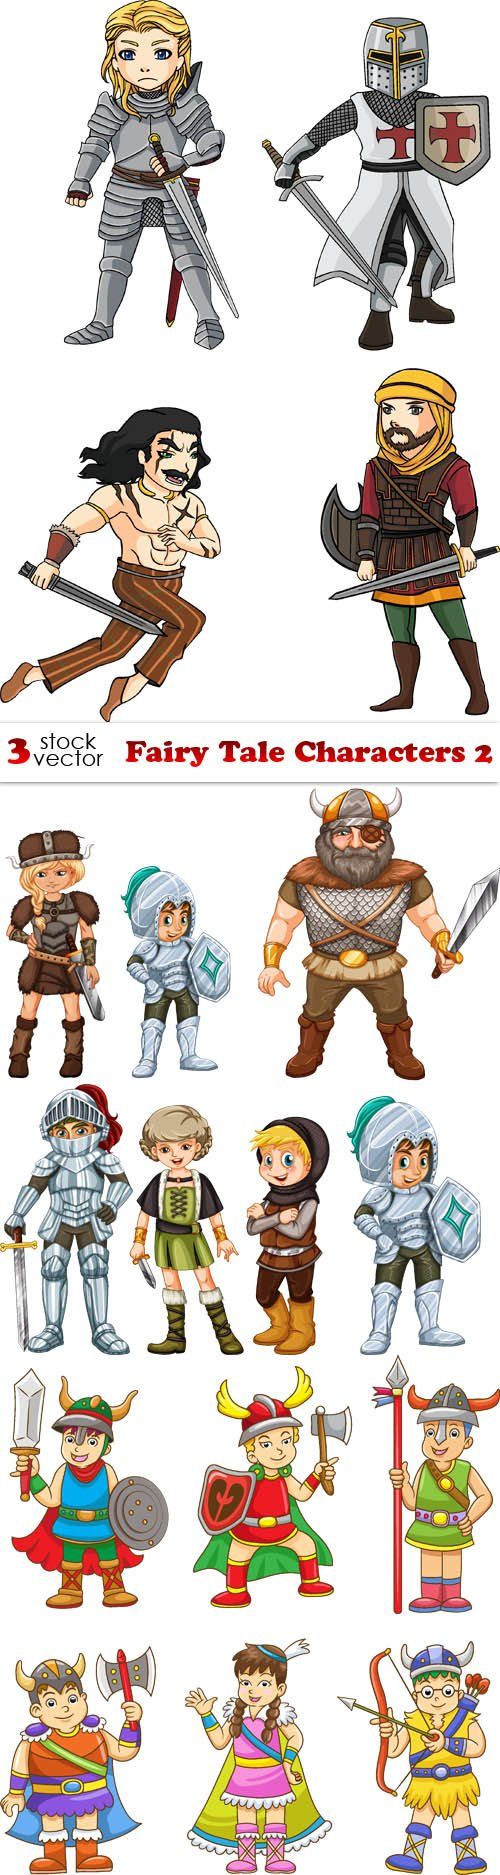 Vectors - Fairy Tale Characters 2